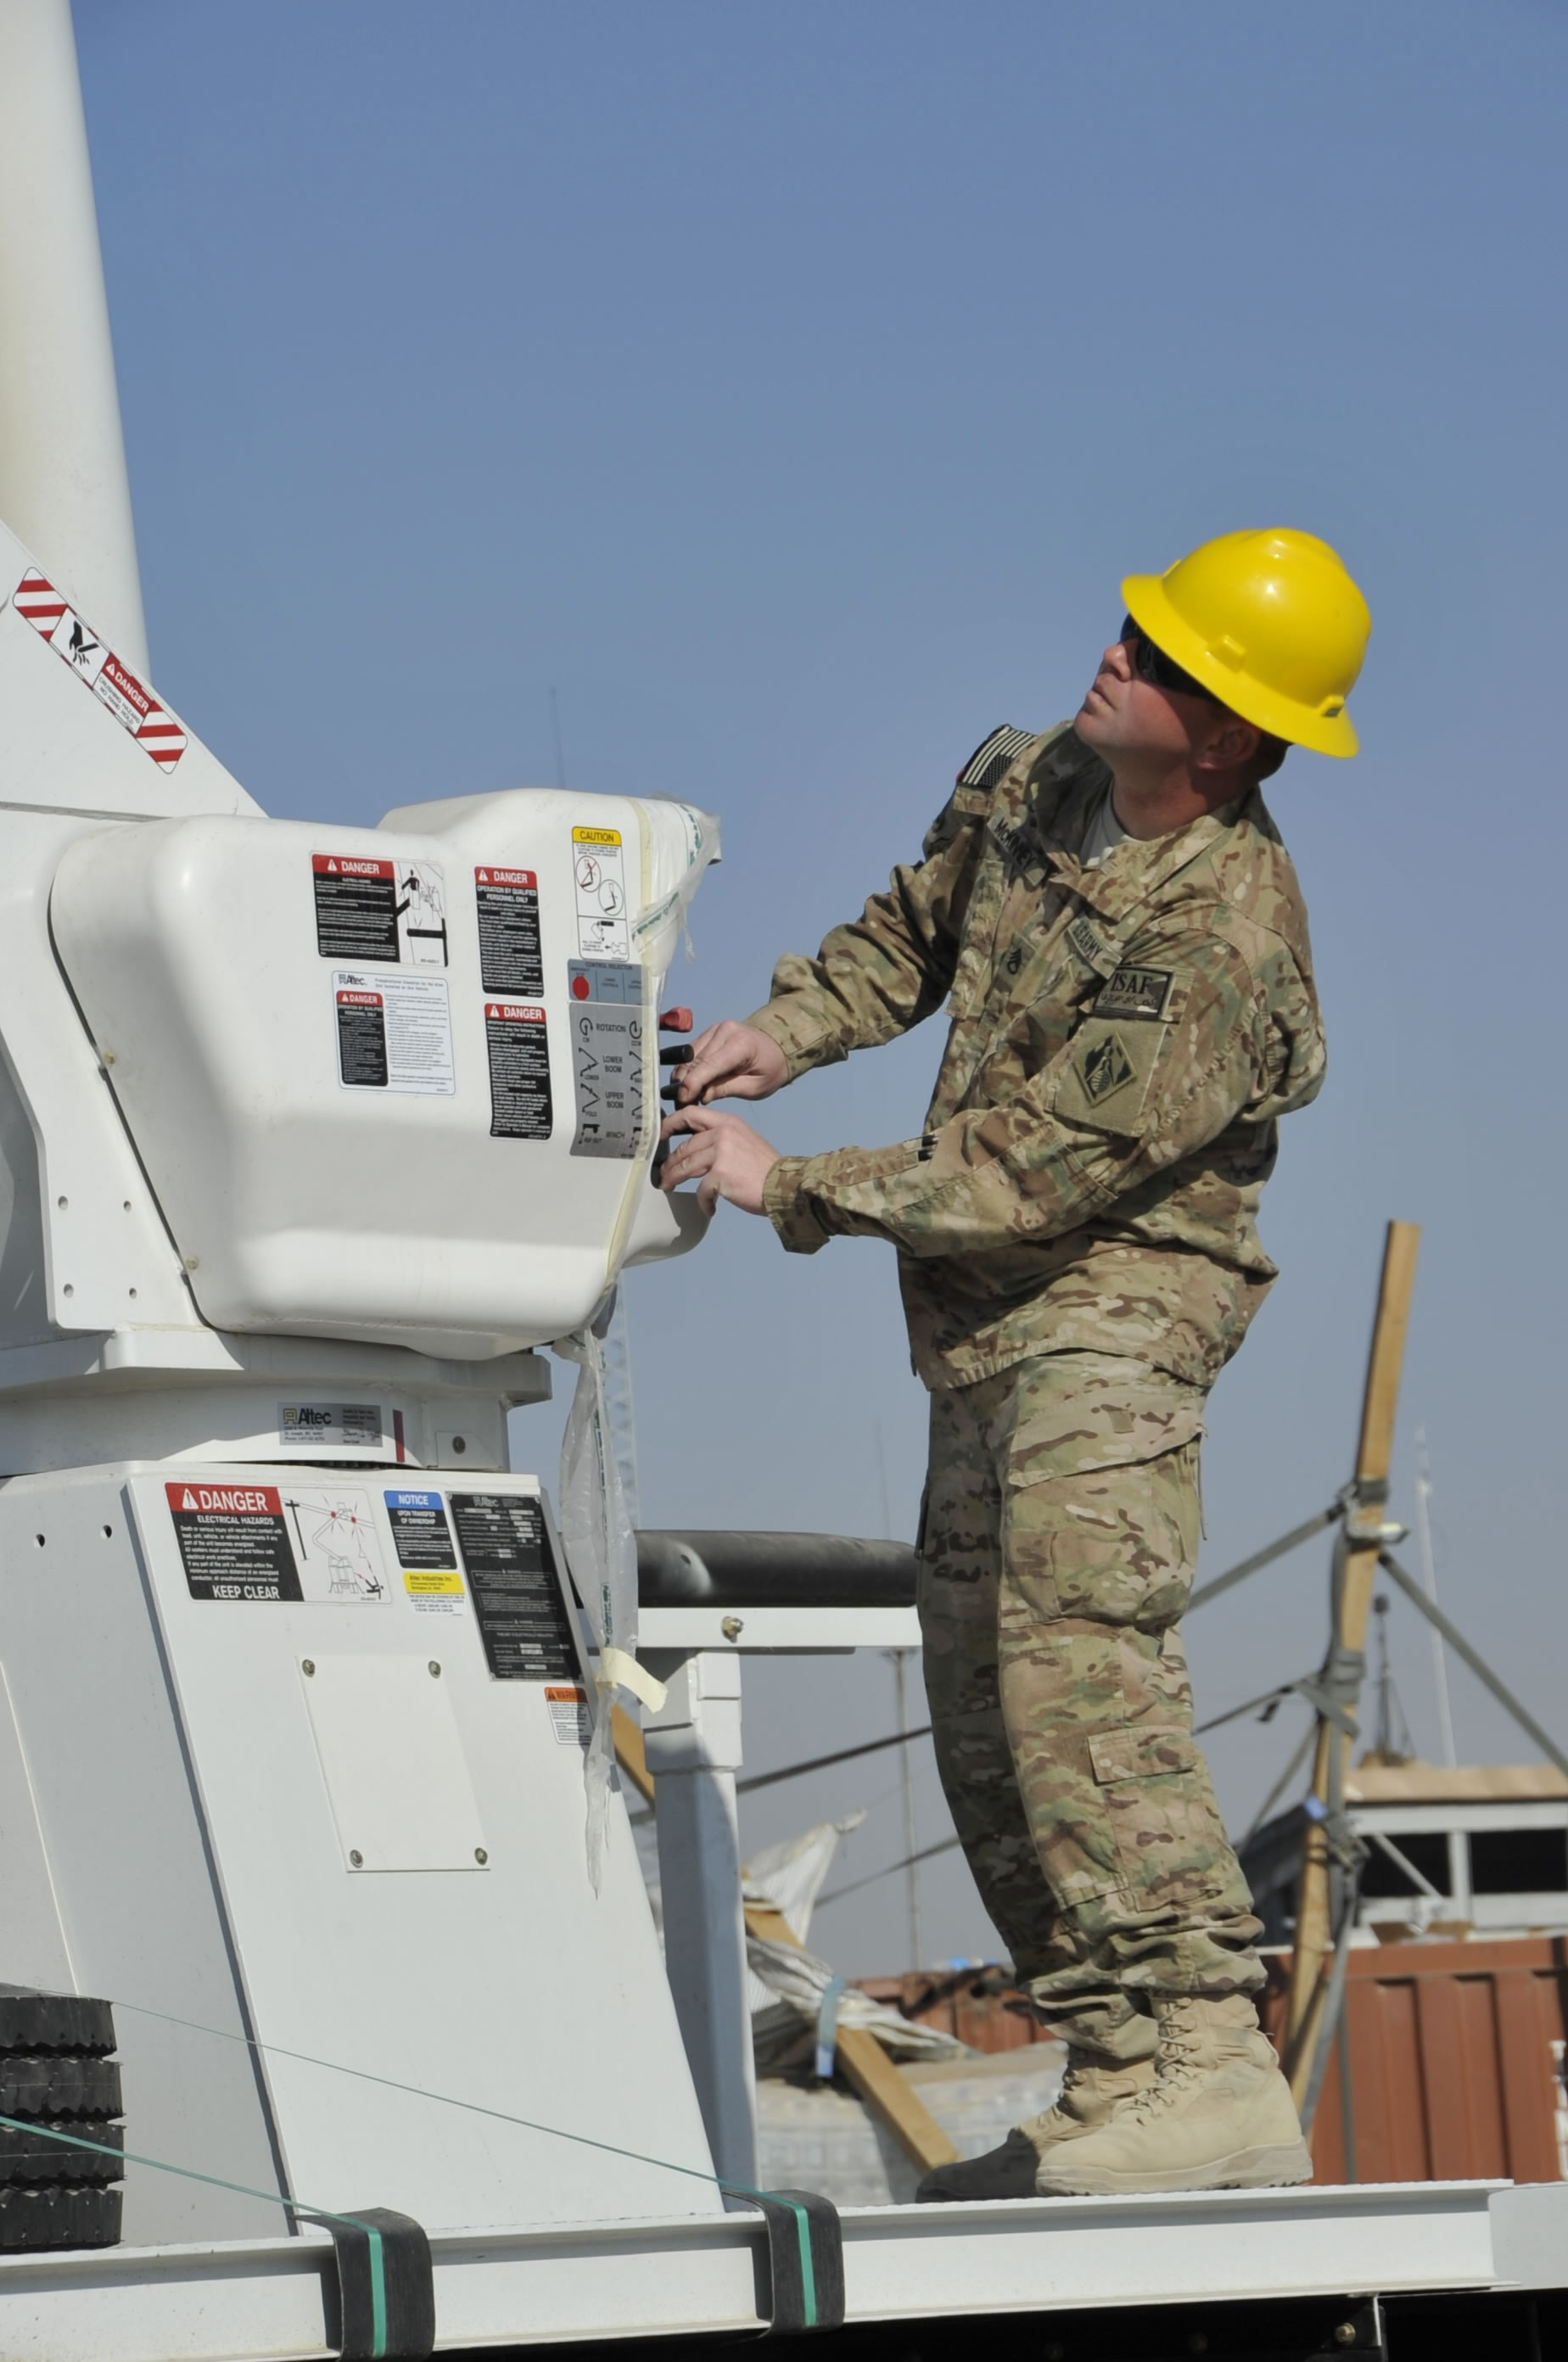 Electrical Engineer Equipment : Afghan electrical engineers linemen receive training new